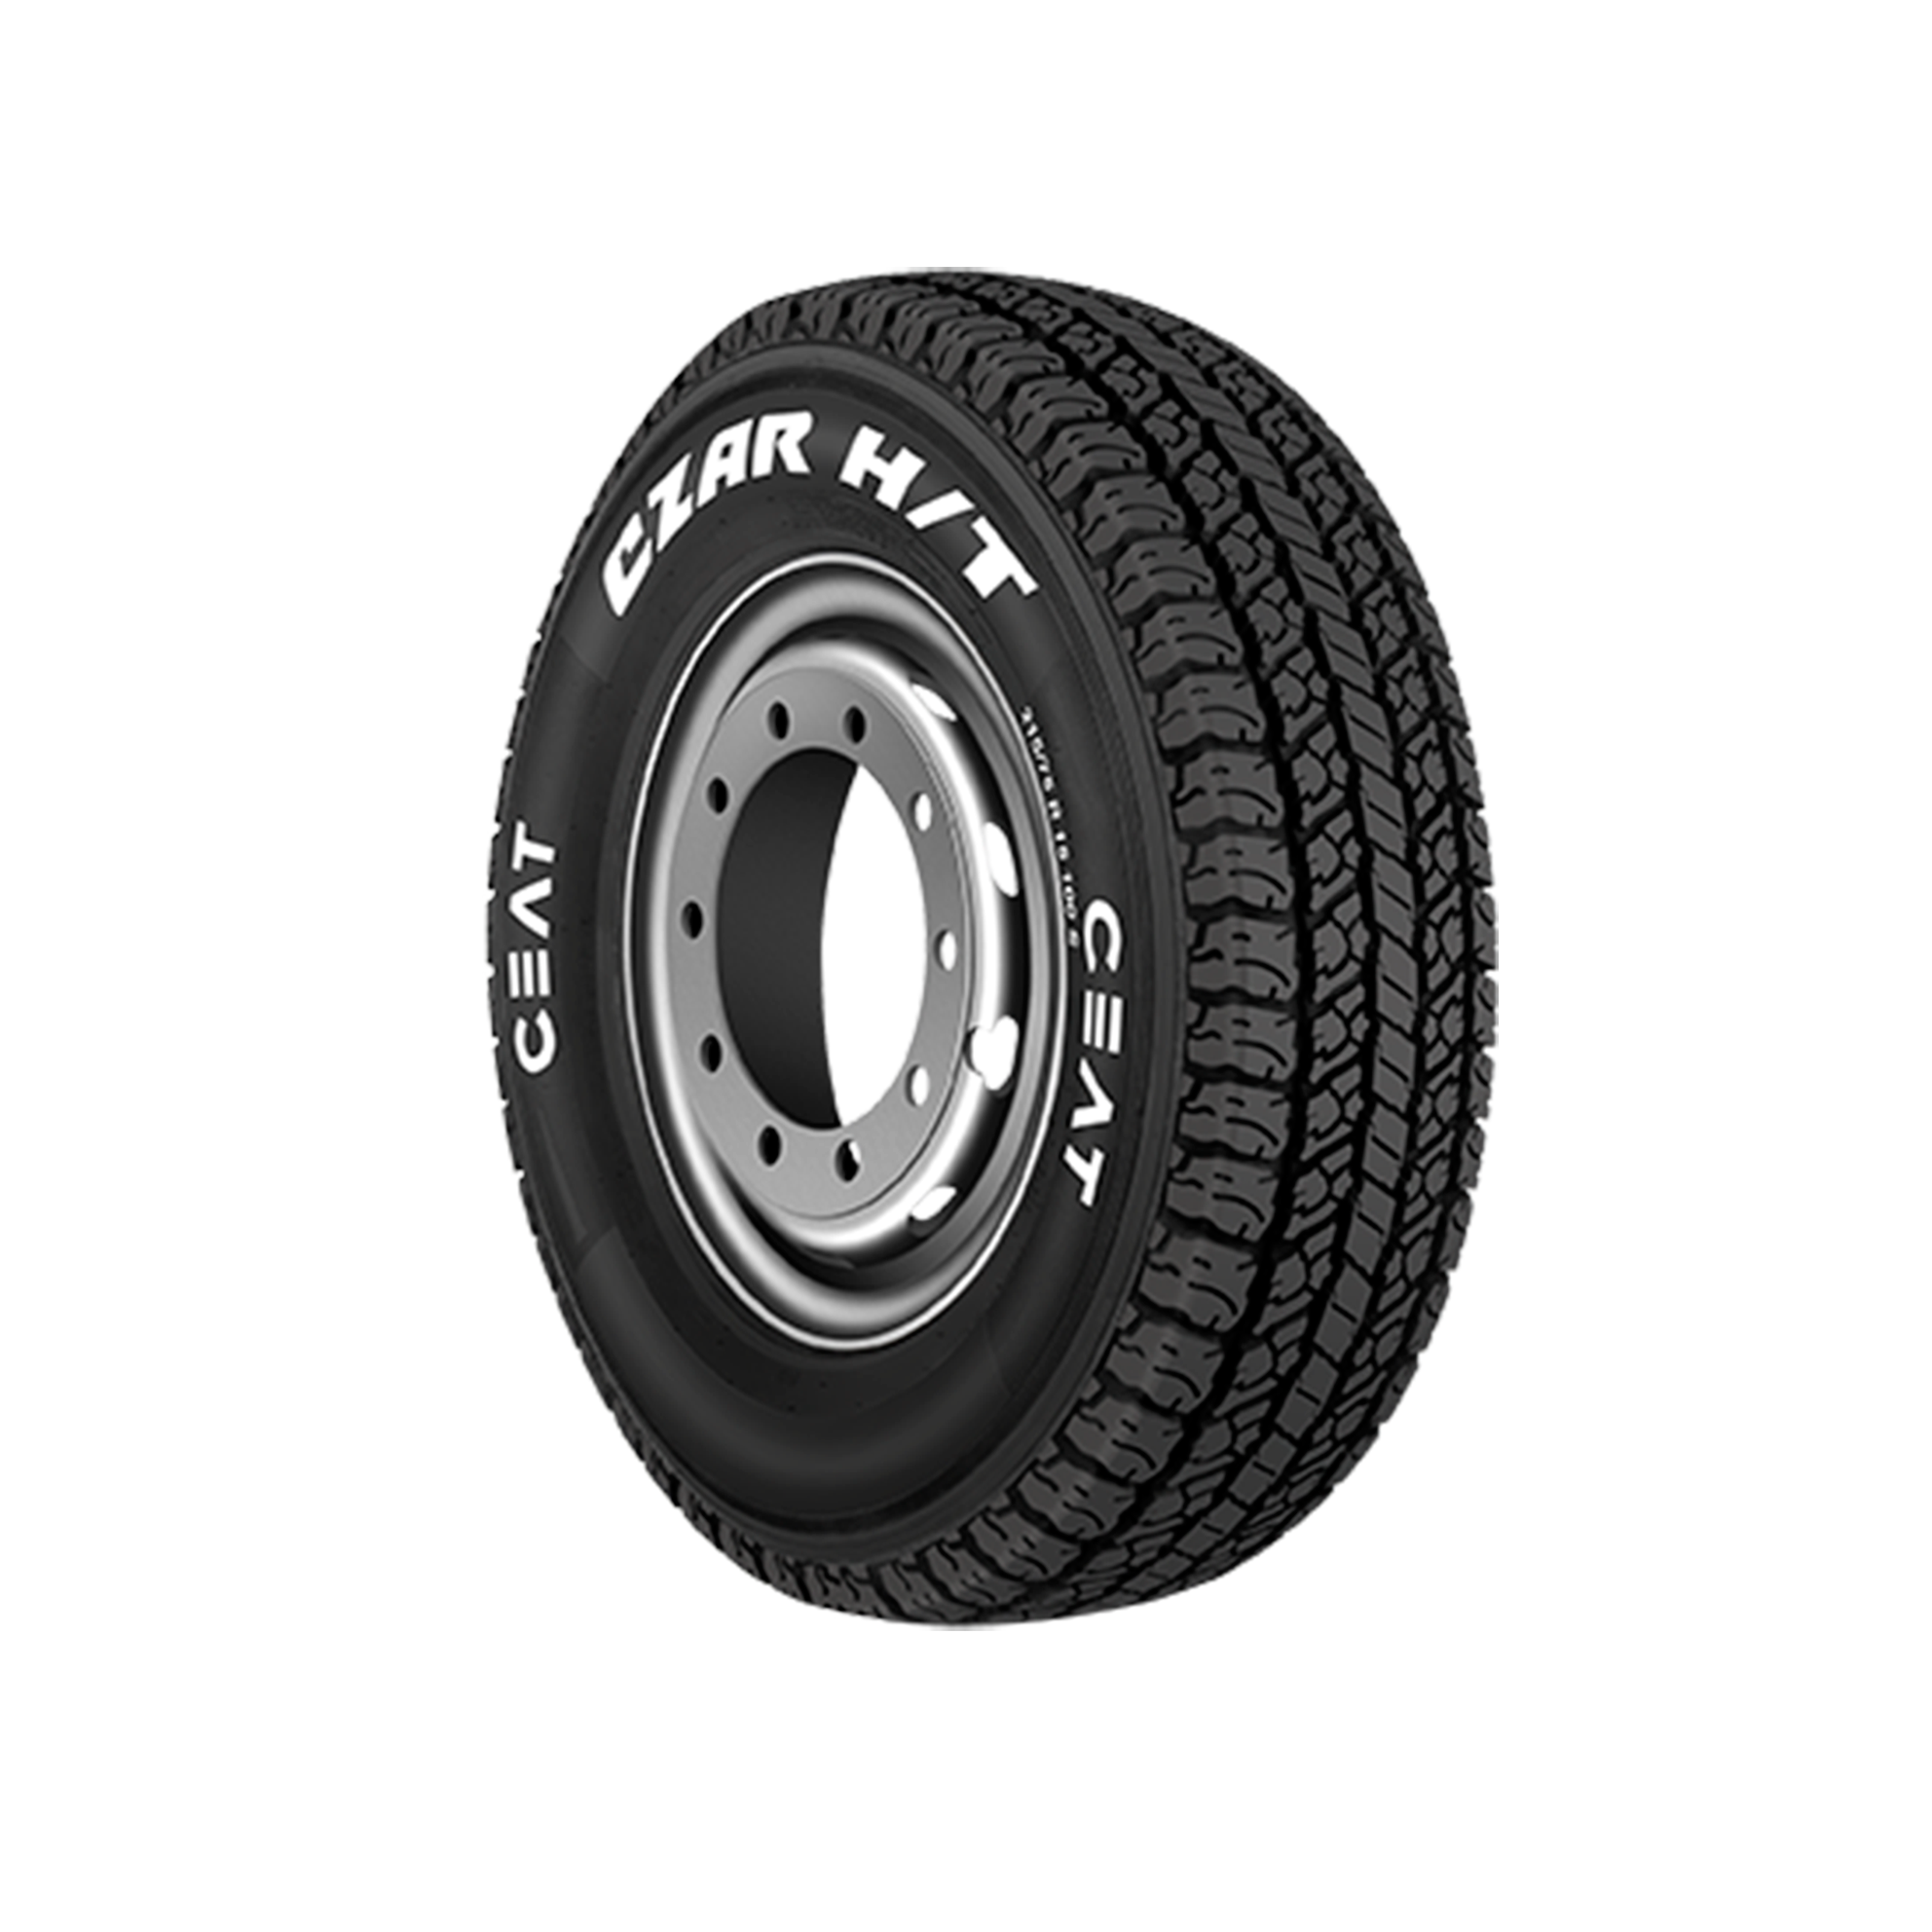 CEAT CZAR H/T 215/75 R 15 Requires Tube 100 S Car Tyre